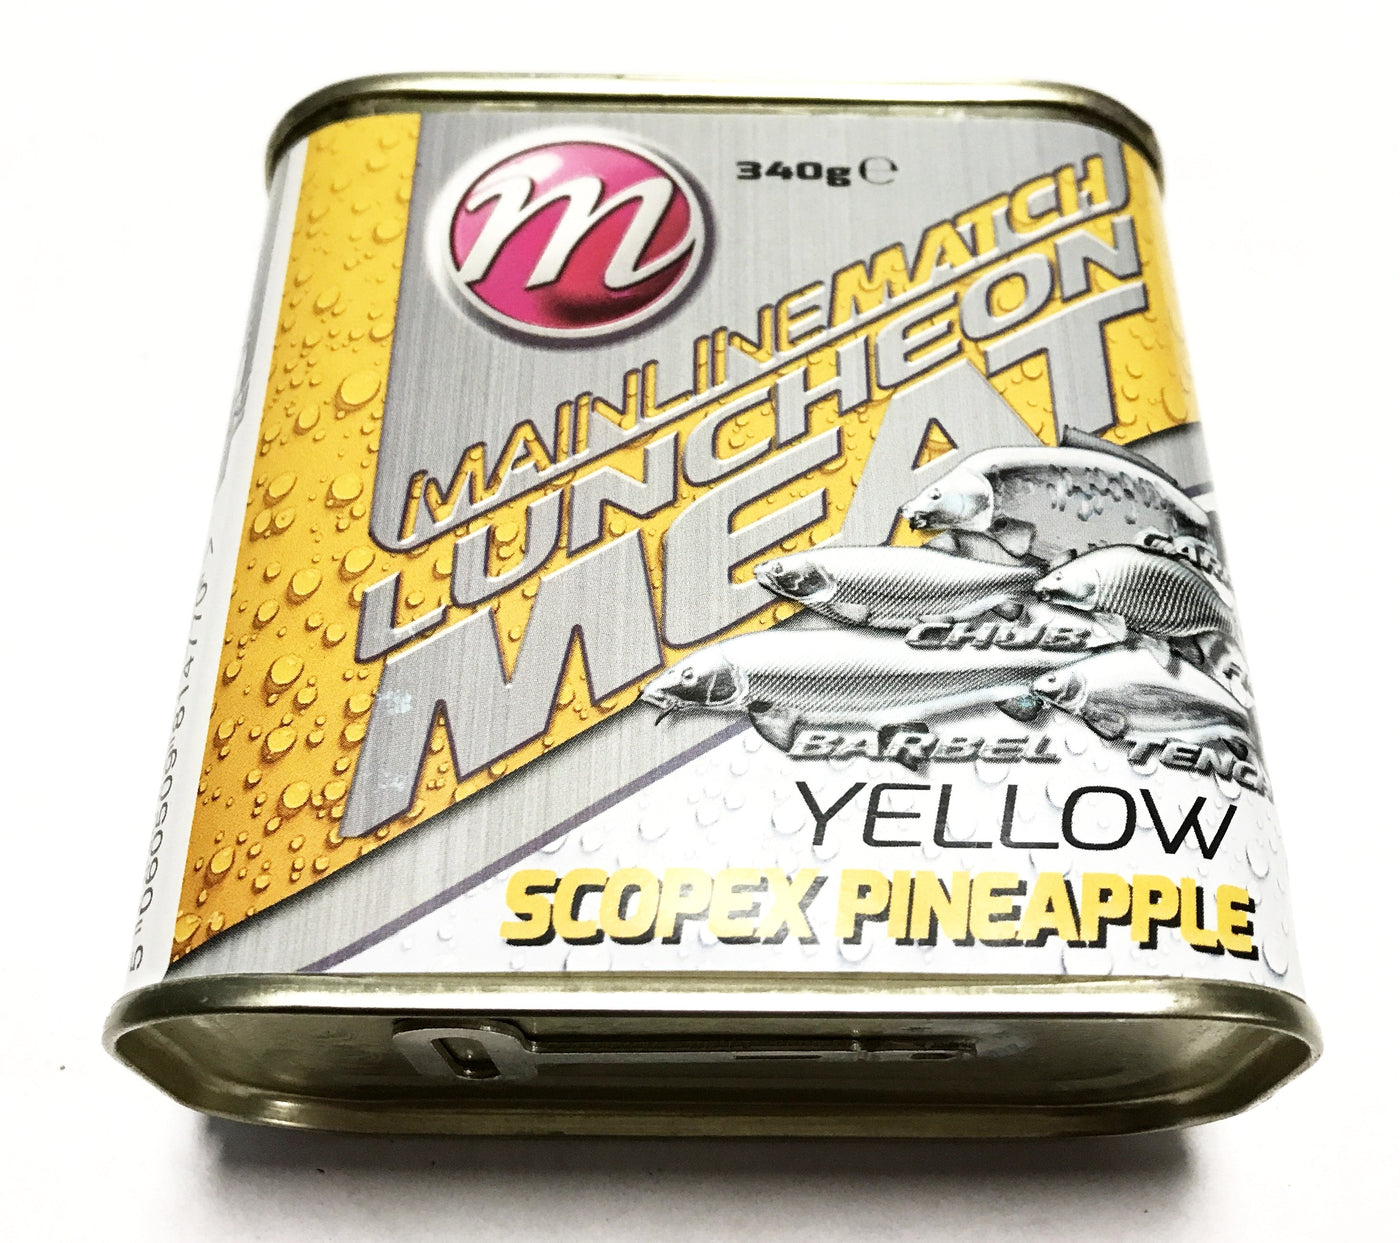 Mainline Baits  Flavoured Fishing Luncheon Meat  YELLOW SCOPEX  PINEAPPLE 340g